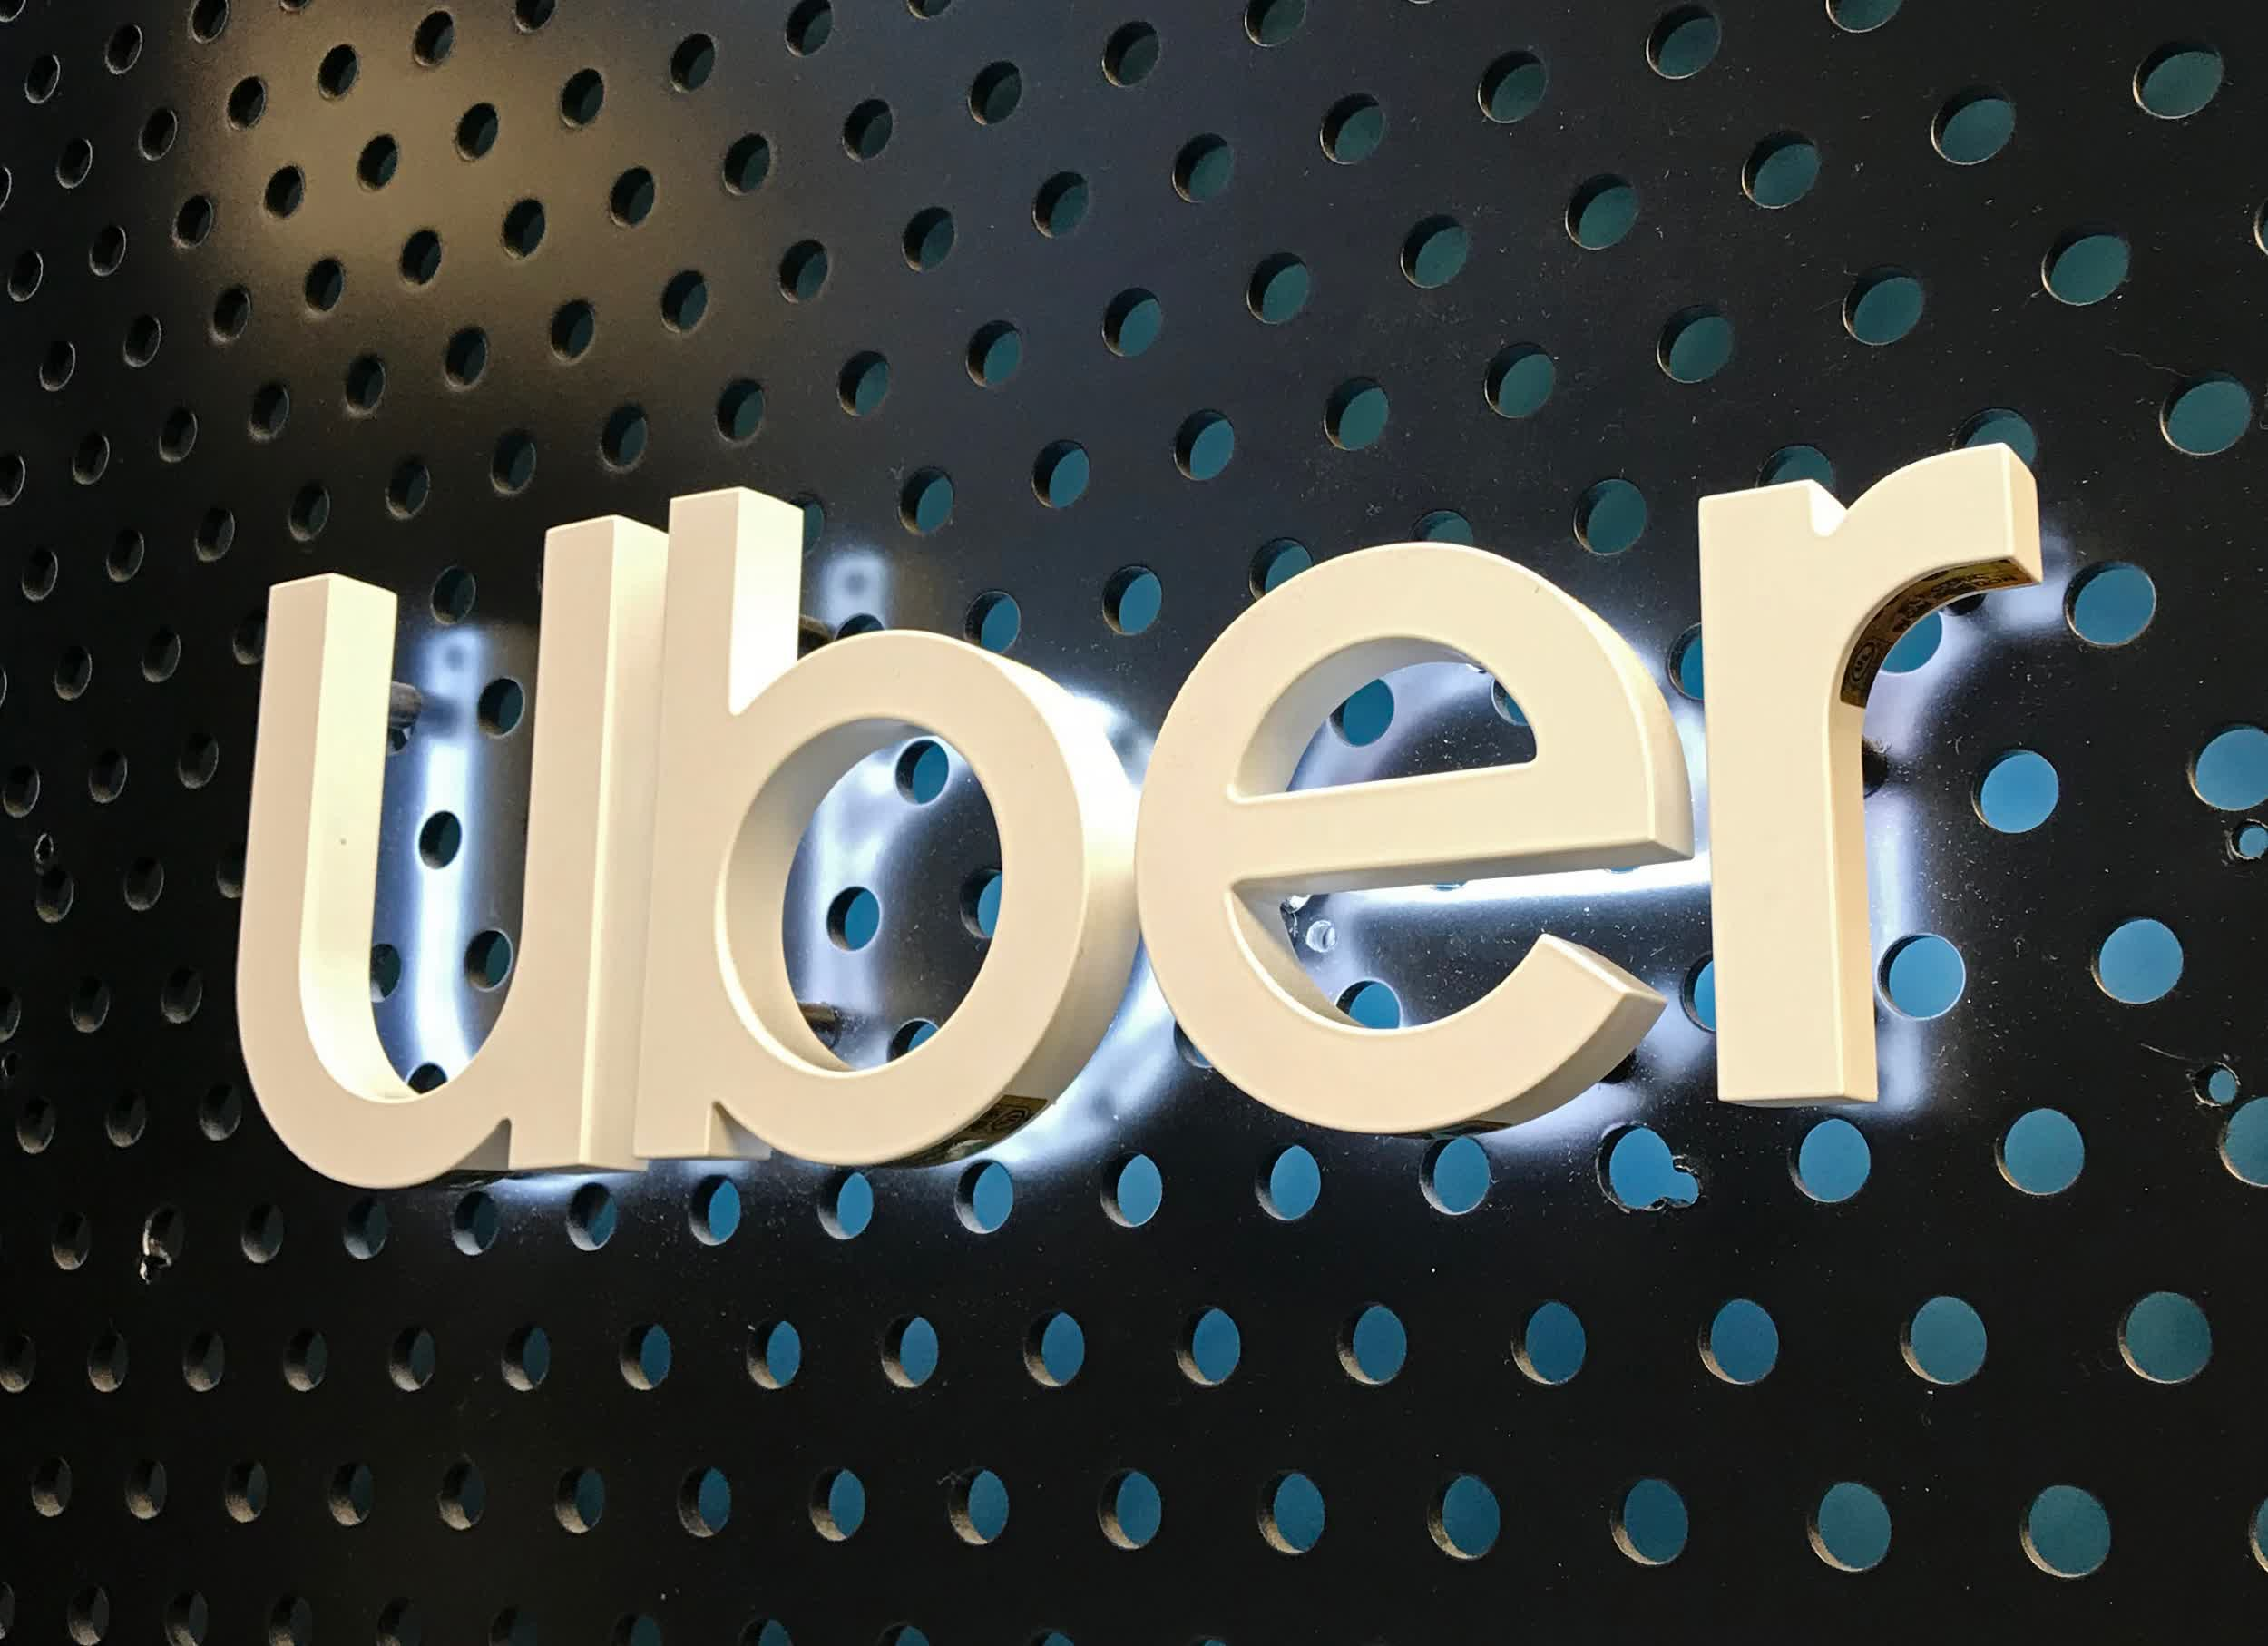 Uber isn't done: Gross bookings in March hit a 12-year high